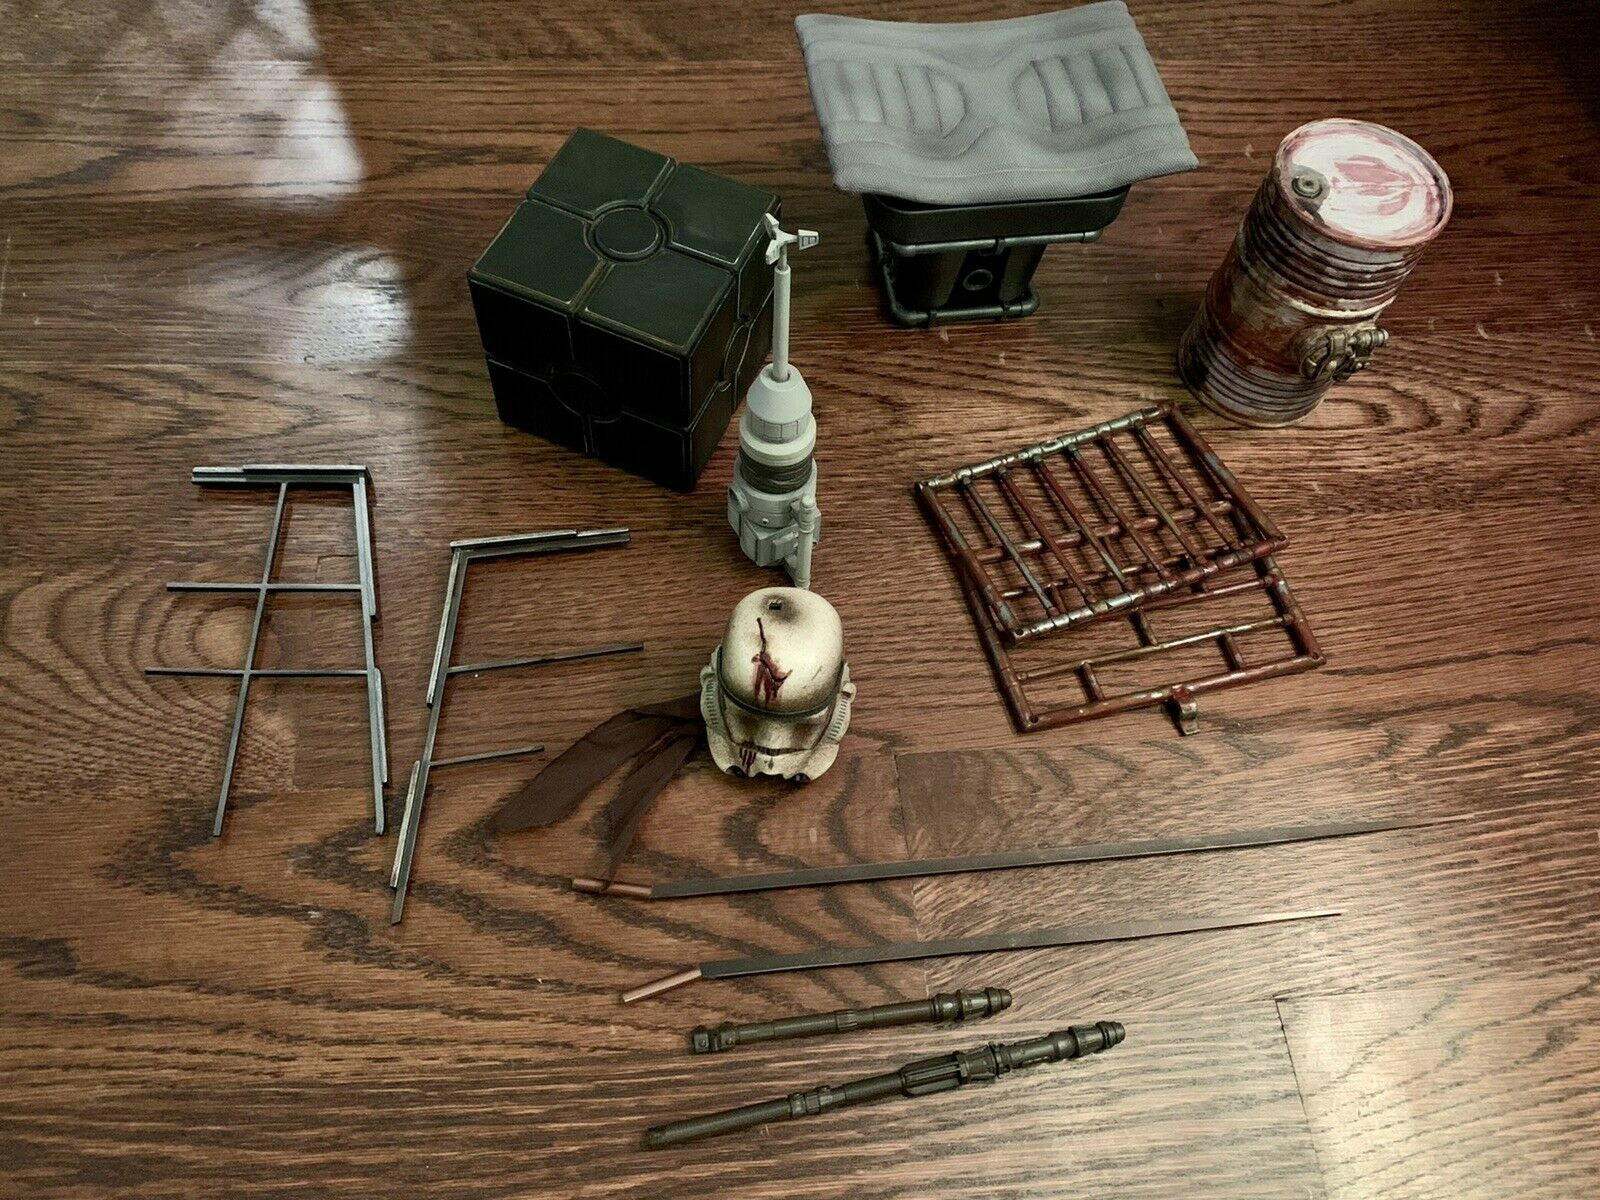 Custom Hot Toys Star Wars 1/6 Scale Sideshow Fodder Accessories Loose Lot on eBay thumbnail